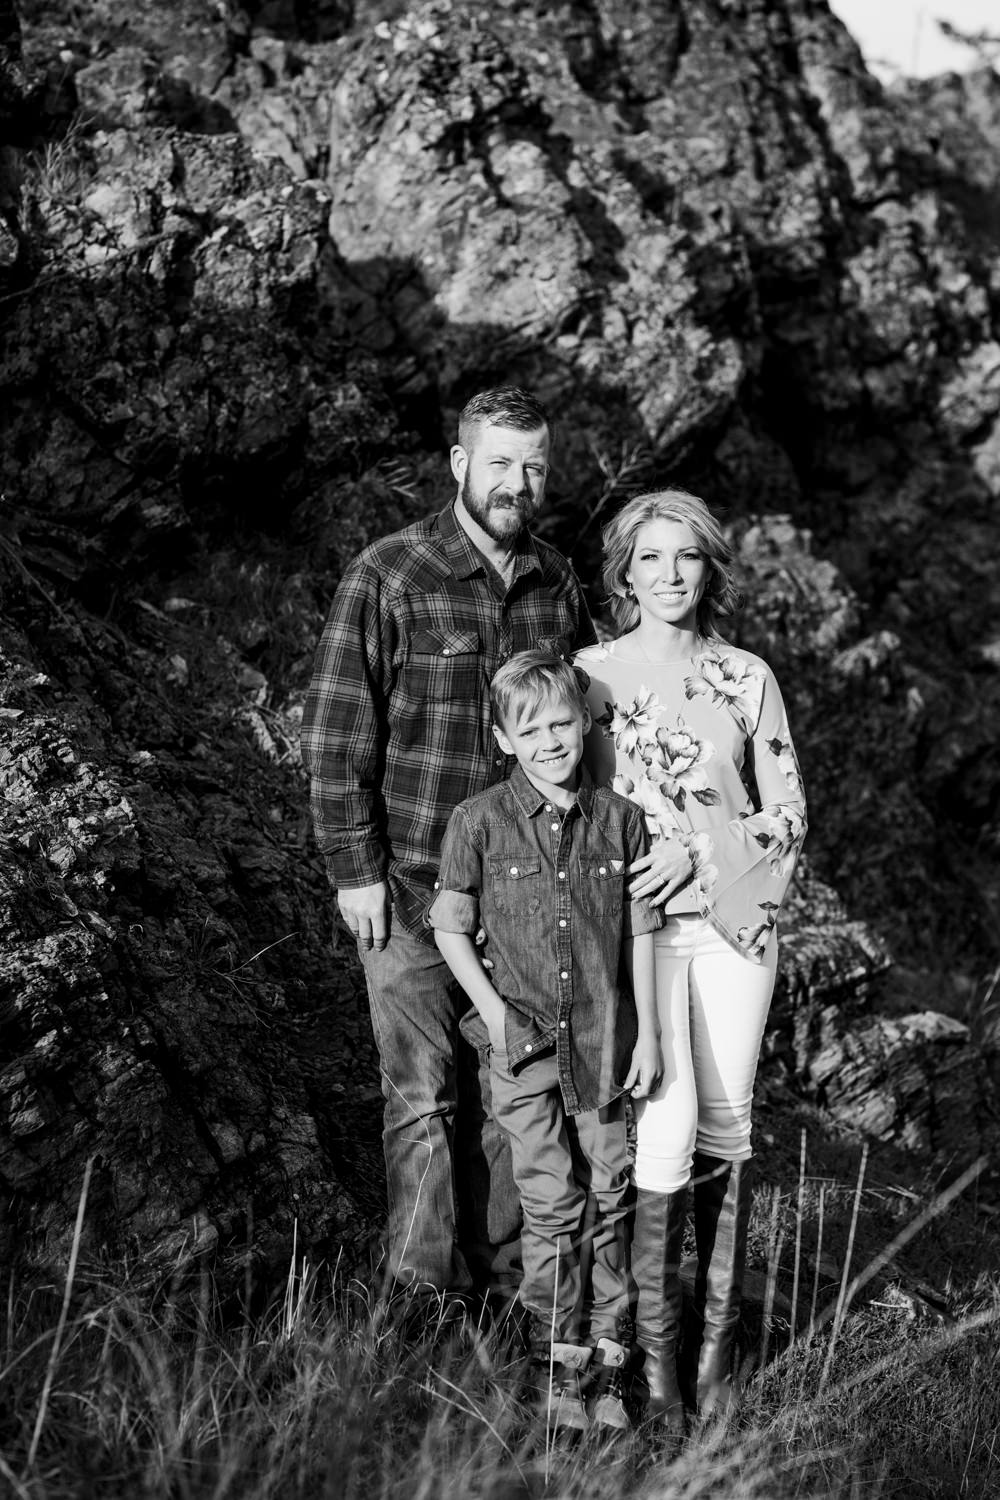 bertram-park-family-photography-bertram-beach-park-kelowna-bc-bertram-family-photographer-julie-dorge (2 of 20).jpg